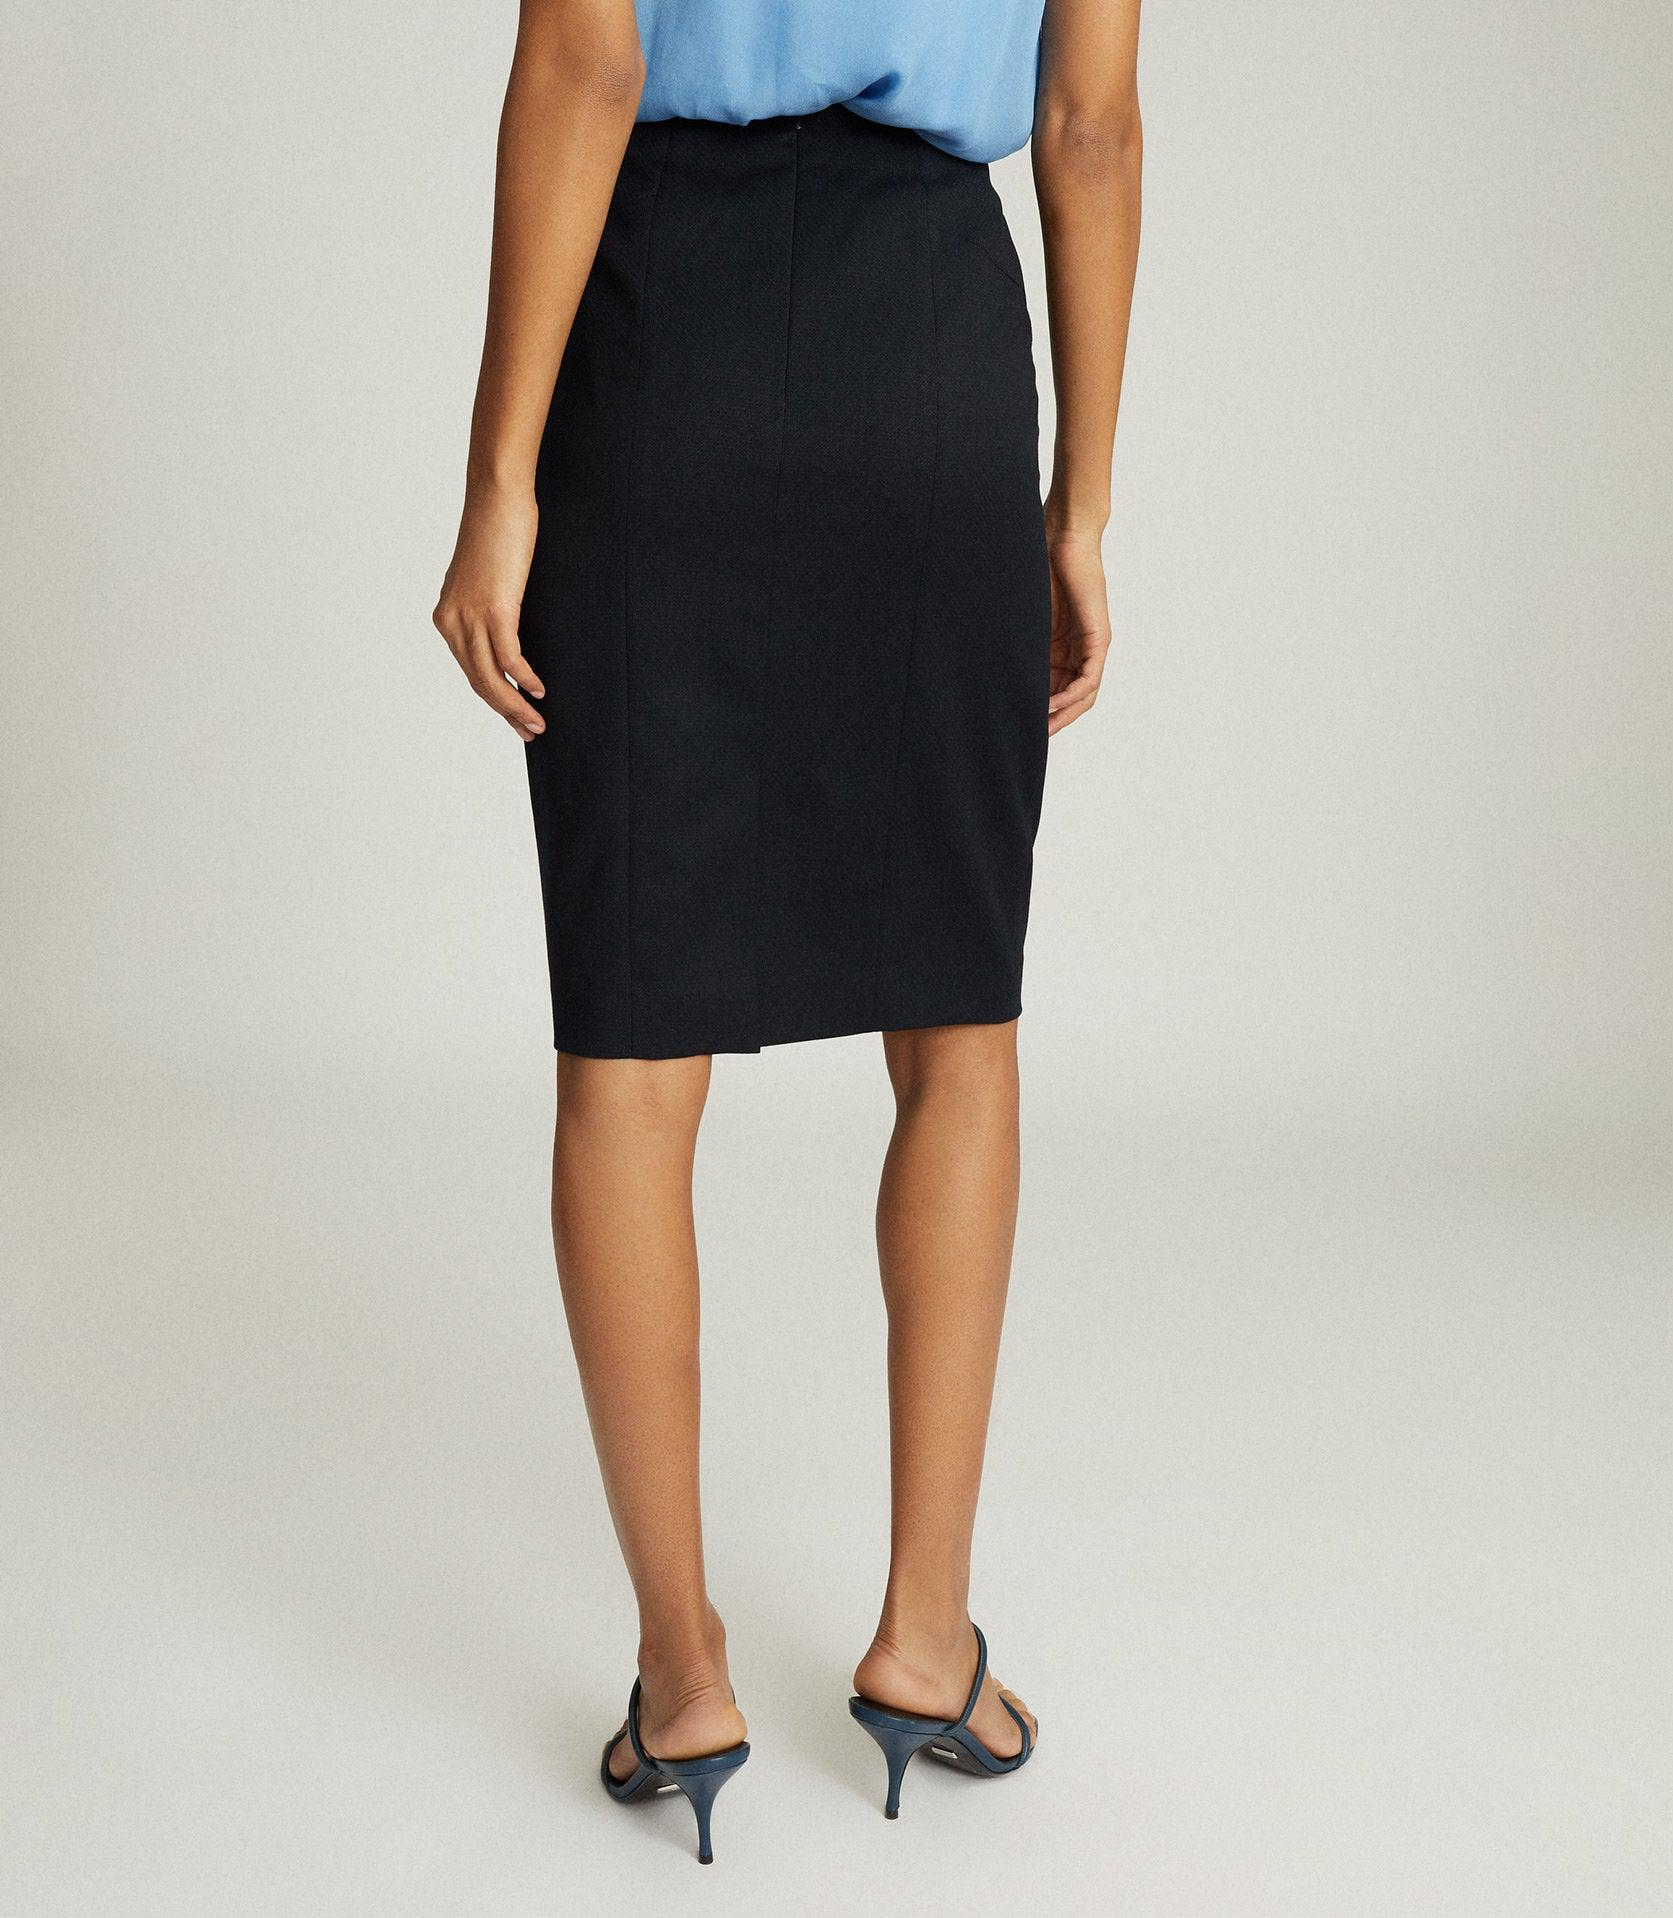 HAYES - TAILORED PENCIL SKIRT 2